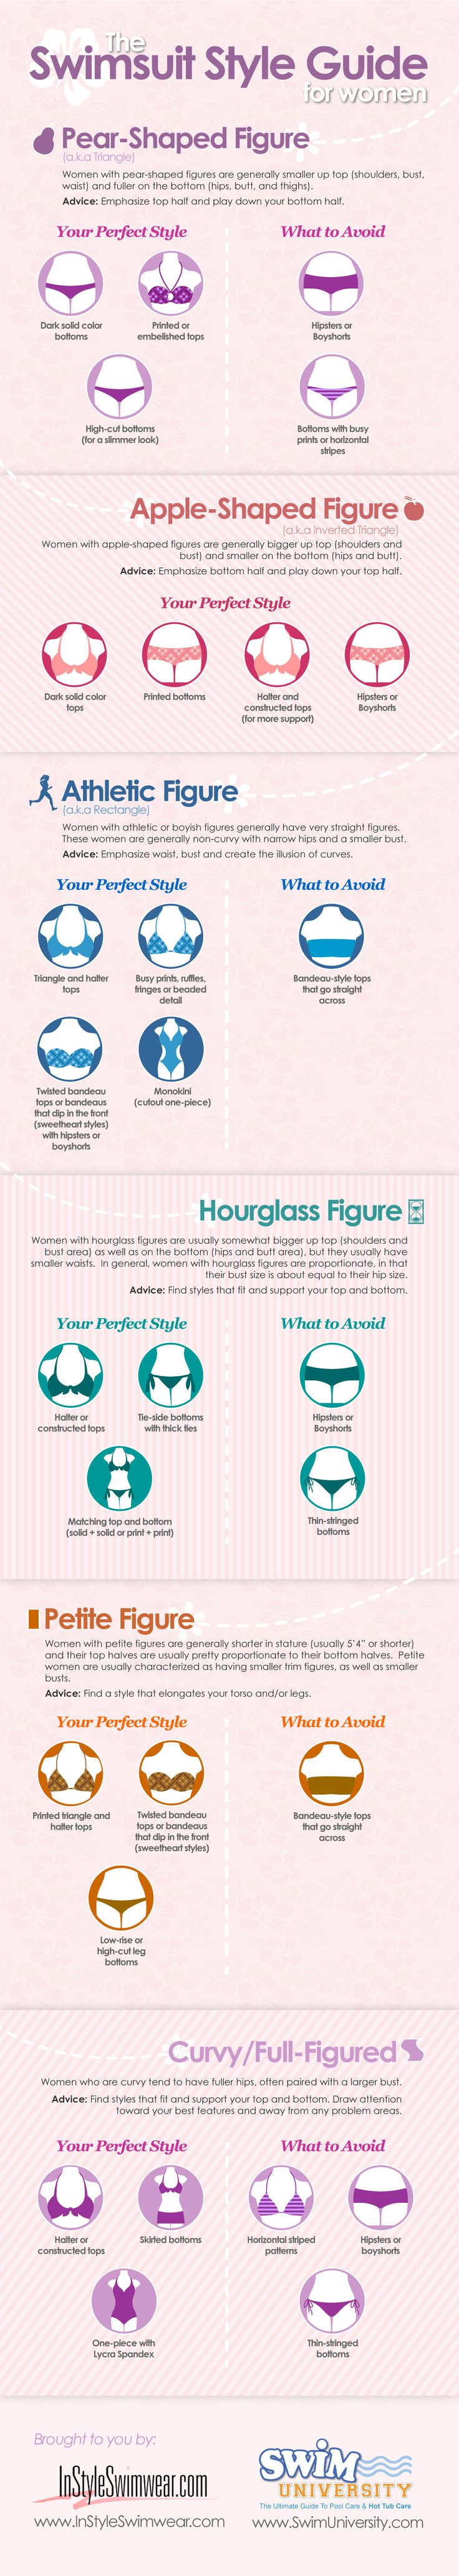 The Swimsuit Style Guide for Women [Infographic] — Shutterbug Seshat